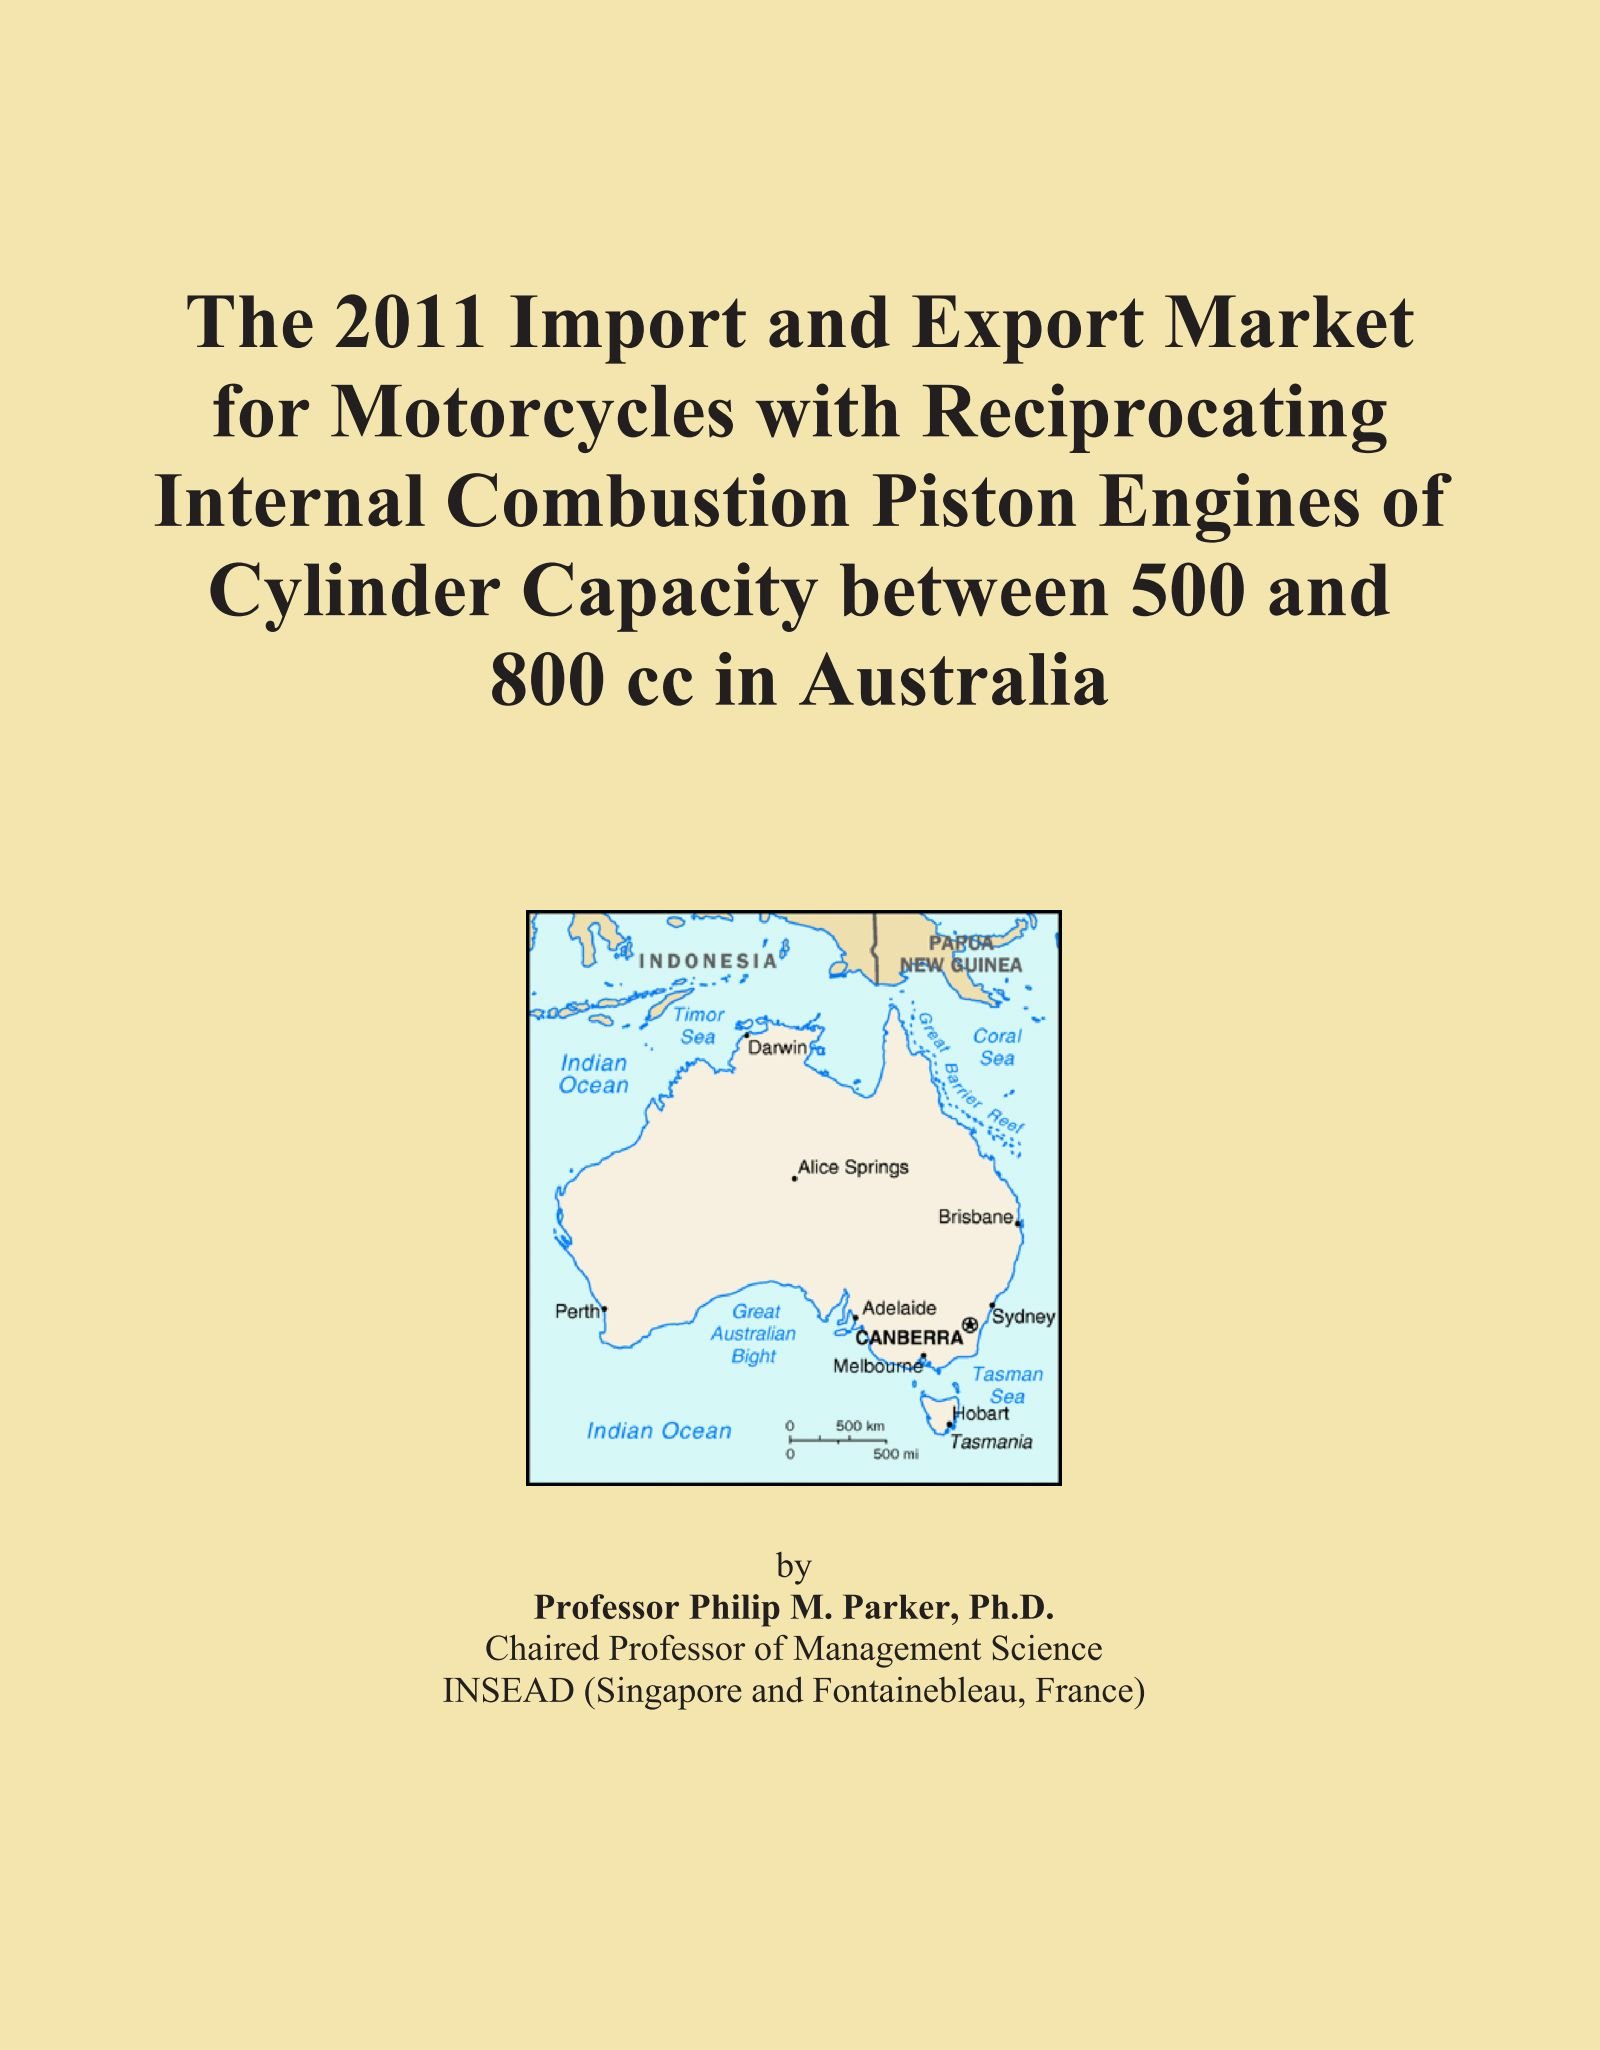 The 2011 Import and Export Market for Motorcycles with Reciprocating Internal Combustion Piston Engines of Cylinder Capacity between 500 and 800 cc in Australia ebook